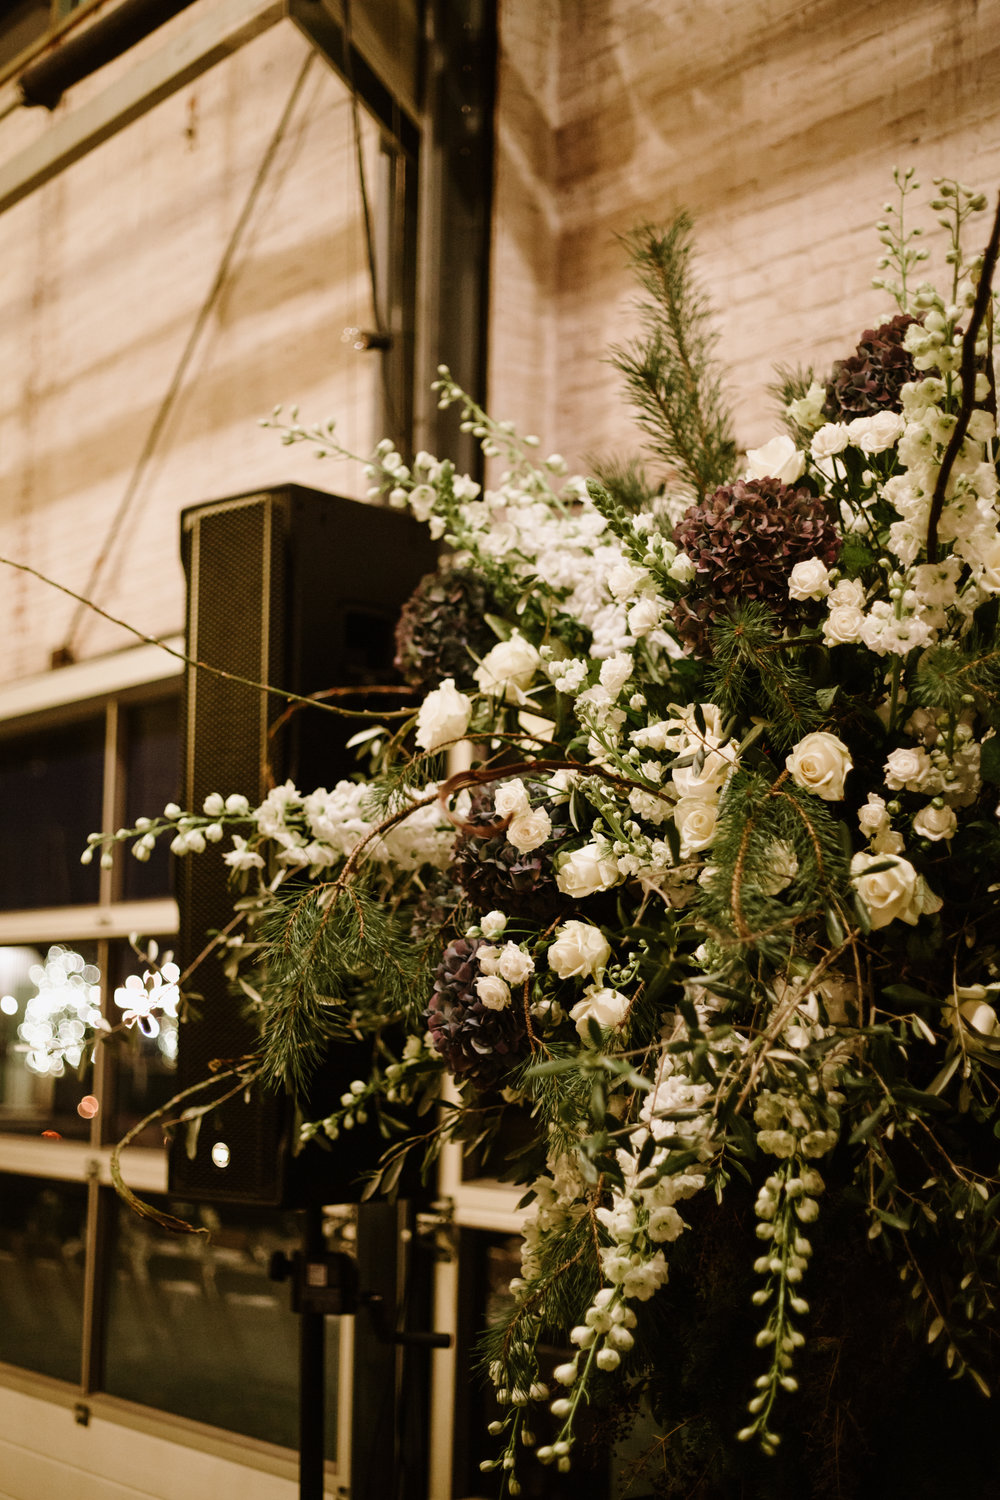 A.P Bloem florist bloemist Amsterdam Kerkstraat wedding Bruiloft trouwen event kerst Christmas gezellig liefde love Ido evenement styling winter trouwinspiratie weddinginspiration weddinggoals shesaidyes arrangement hotel de goudfazant